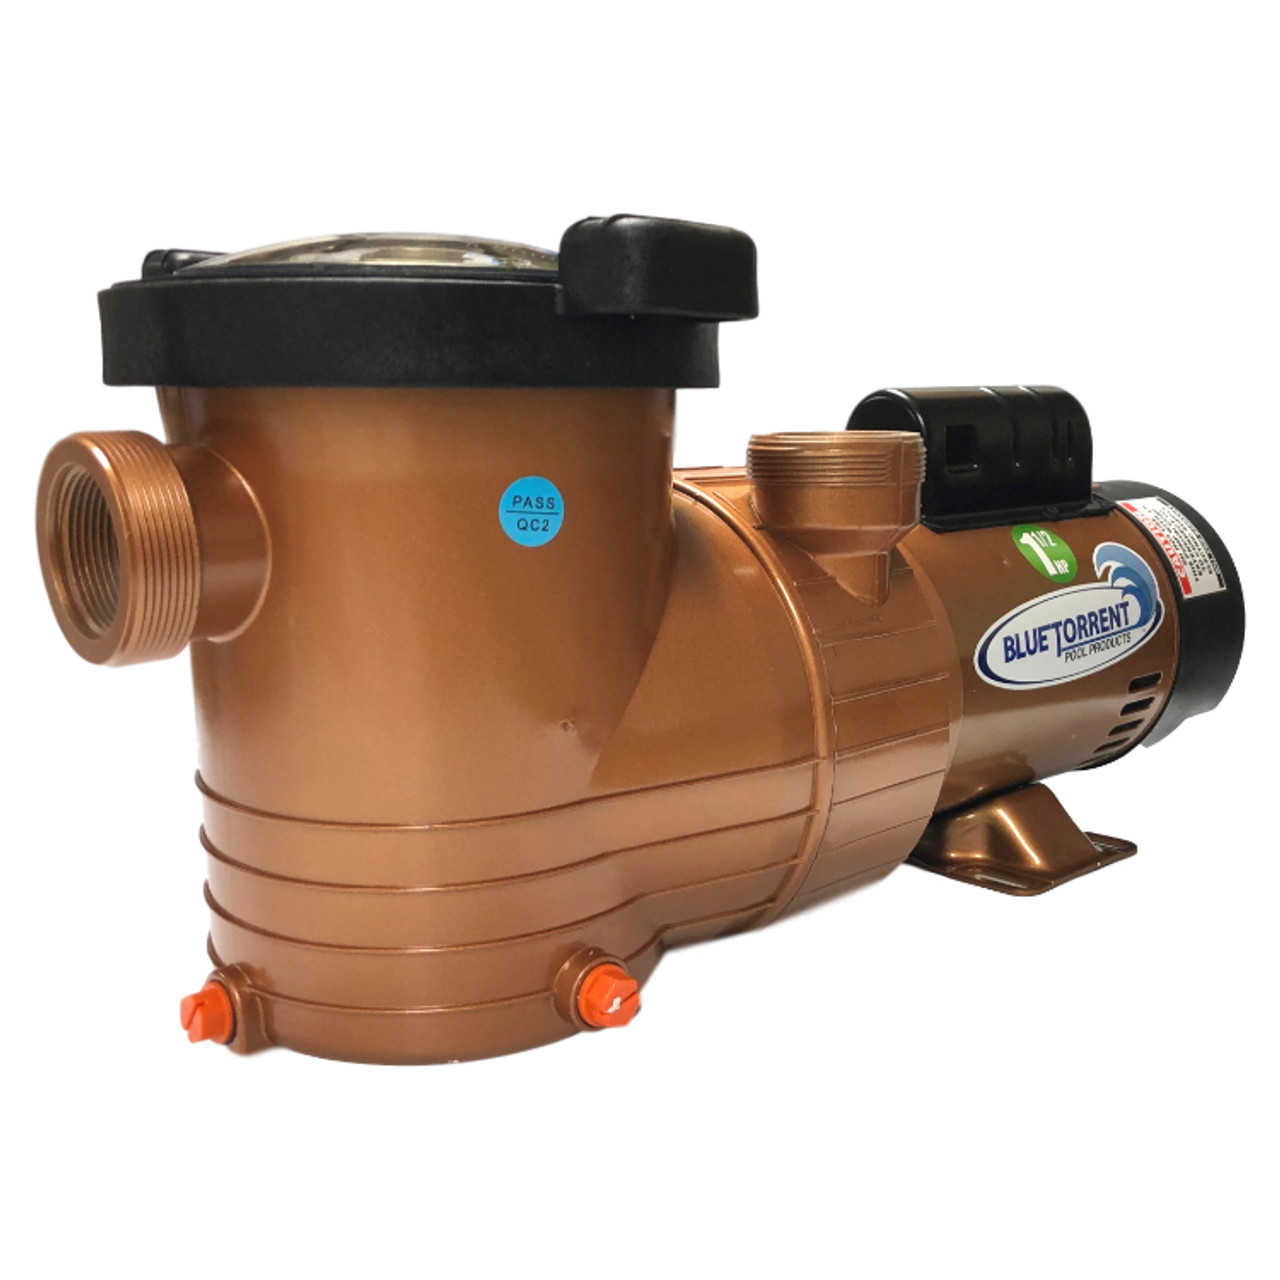 Copper Force Above Ground Swimming Pool Pump With 5 Year Warranty Available  in 1, 1.5 and 2 HP